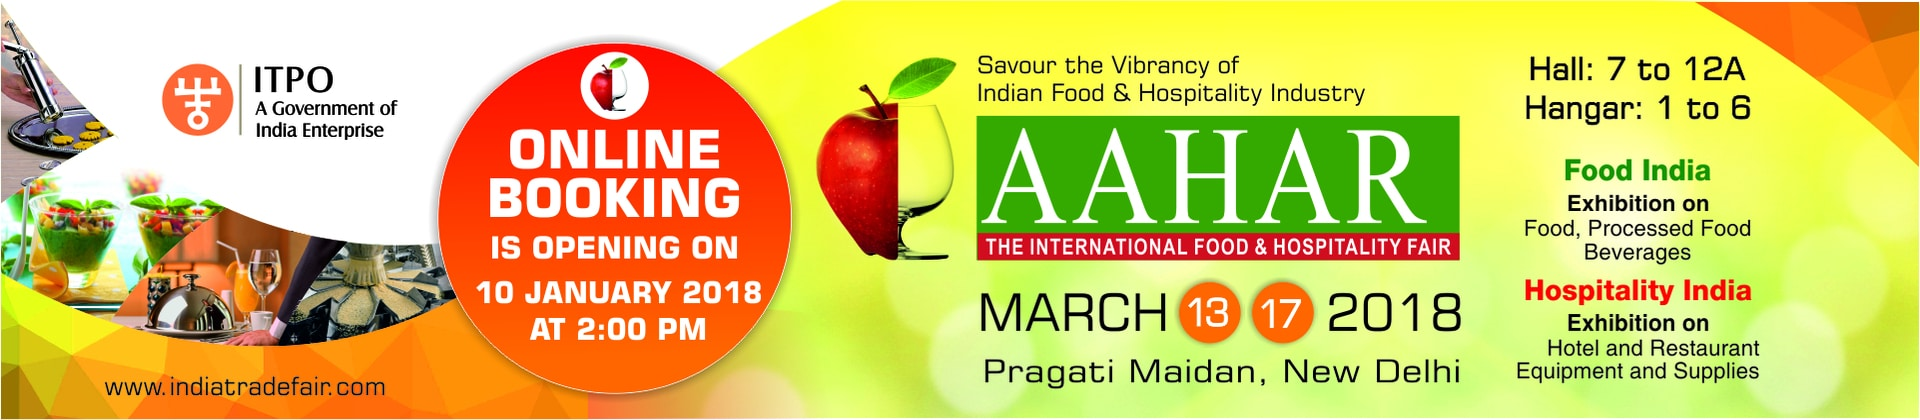 AAHAR - International Food & Hospitality Fair 2018